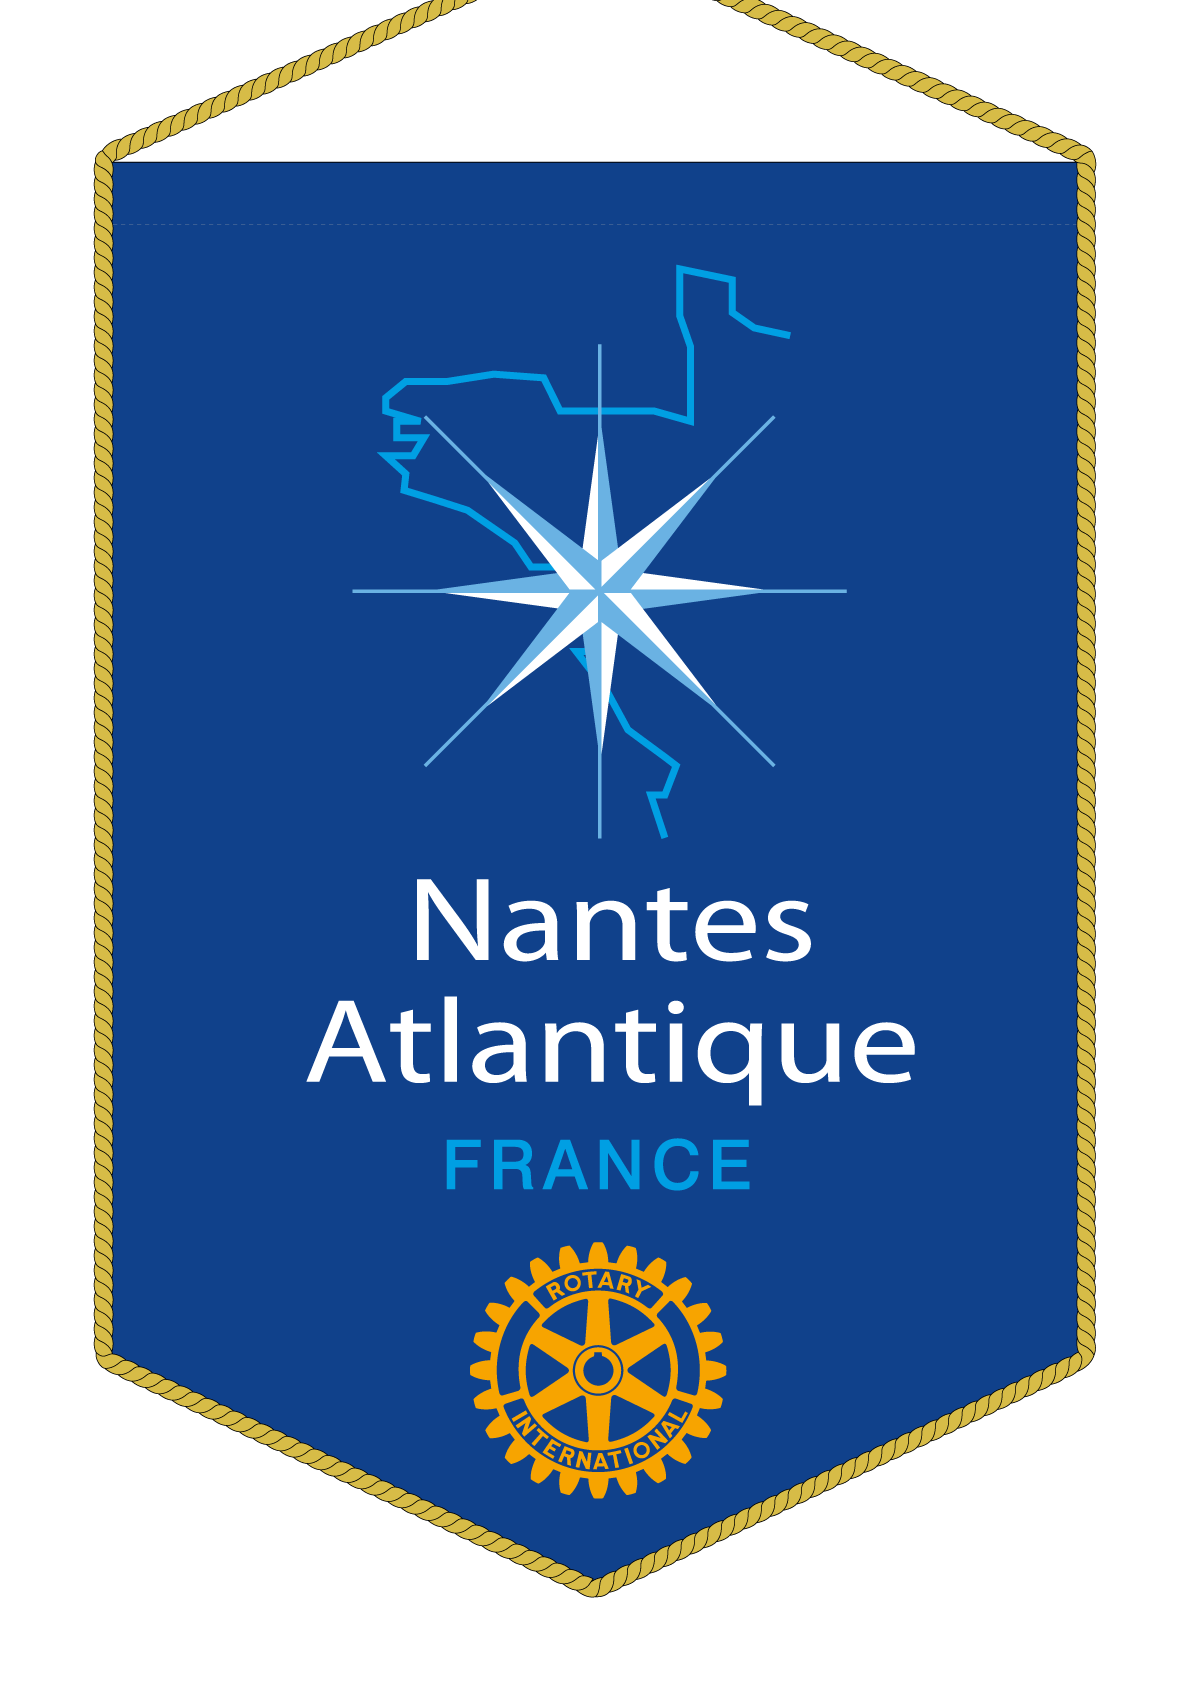 FANION ROTARY CLUB NANTES ATLANTIQUE